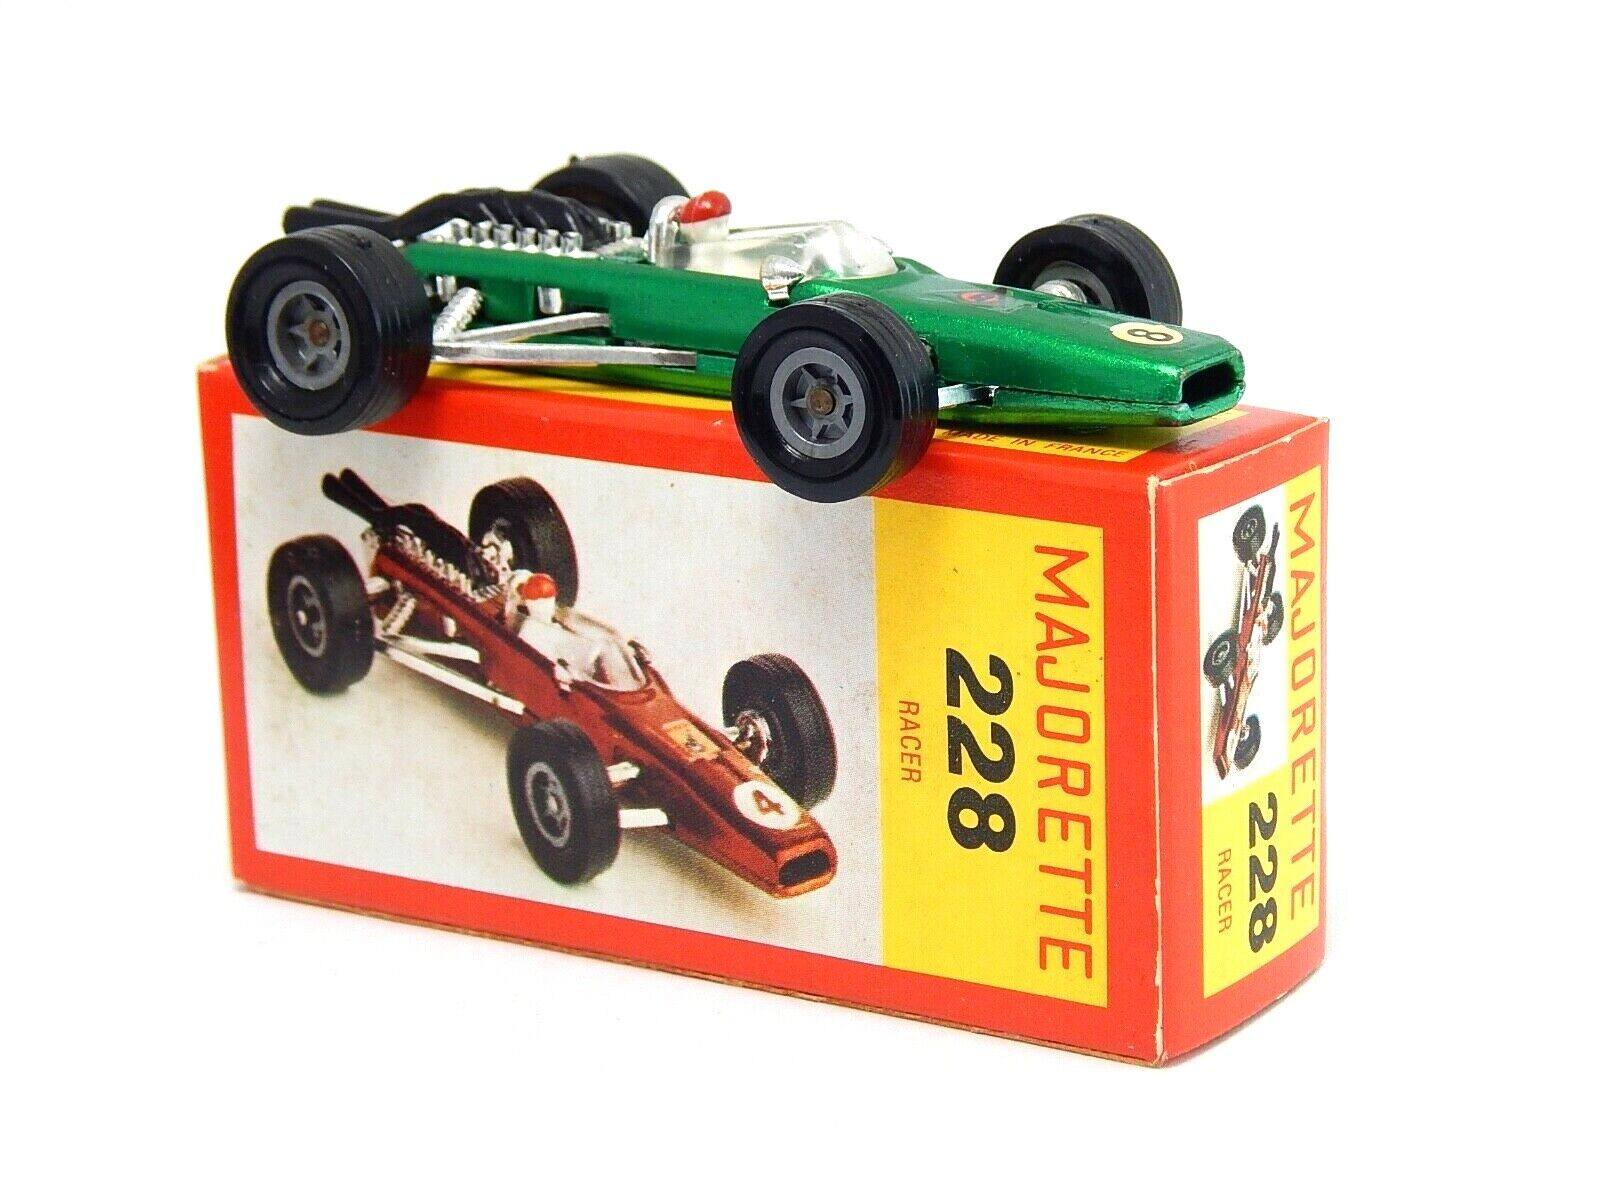 Racing voiture Racer vert  8 Majorette 228 1  65 Made in France Paper Box RARE  le style classique